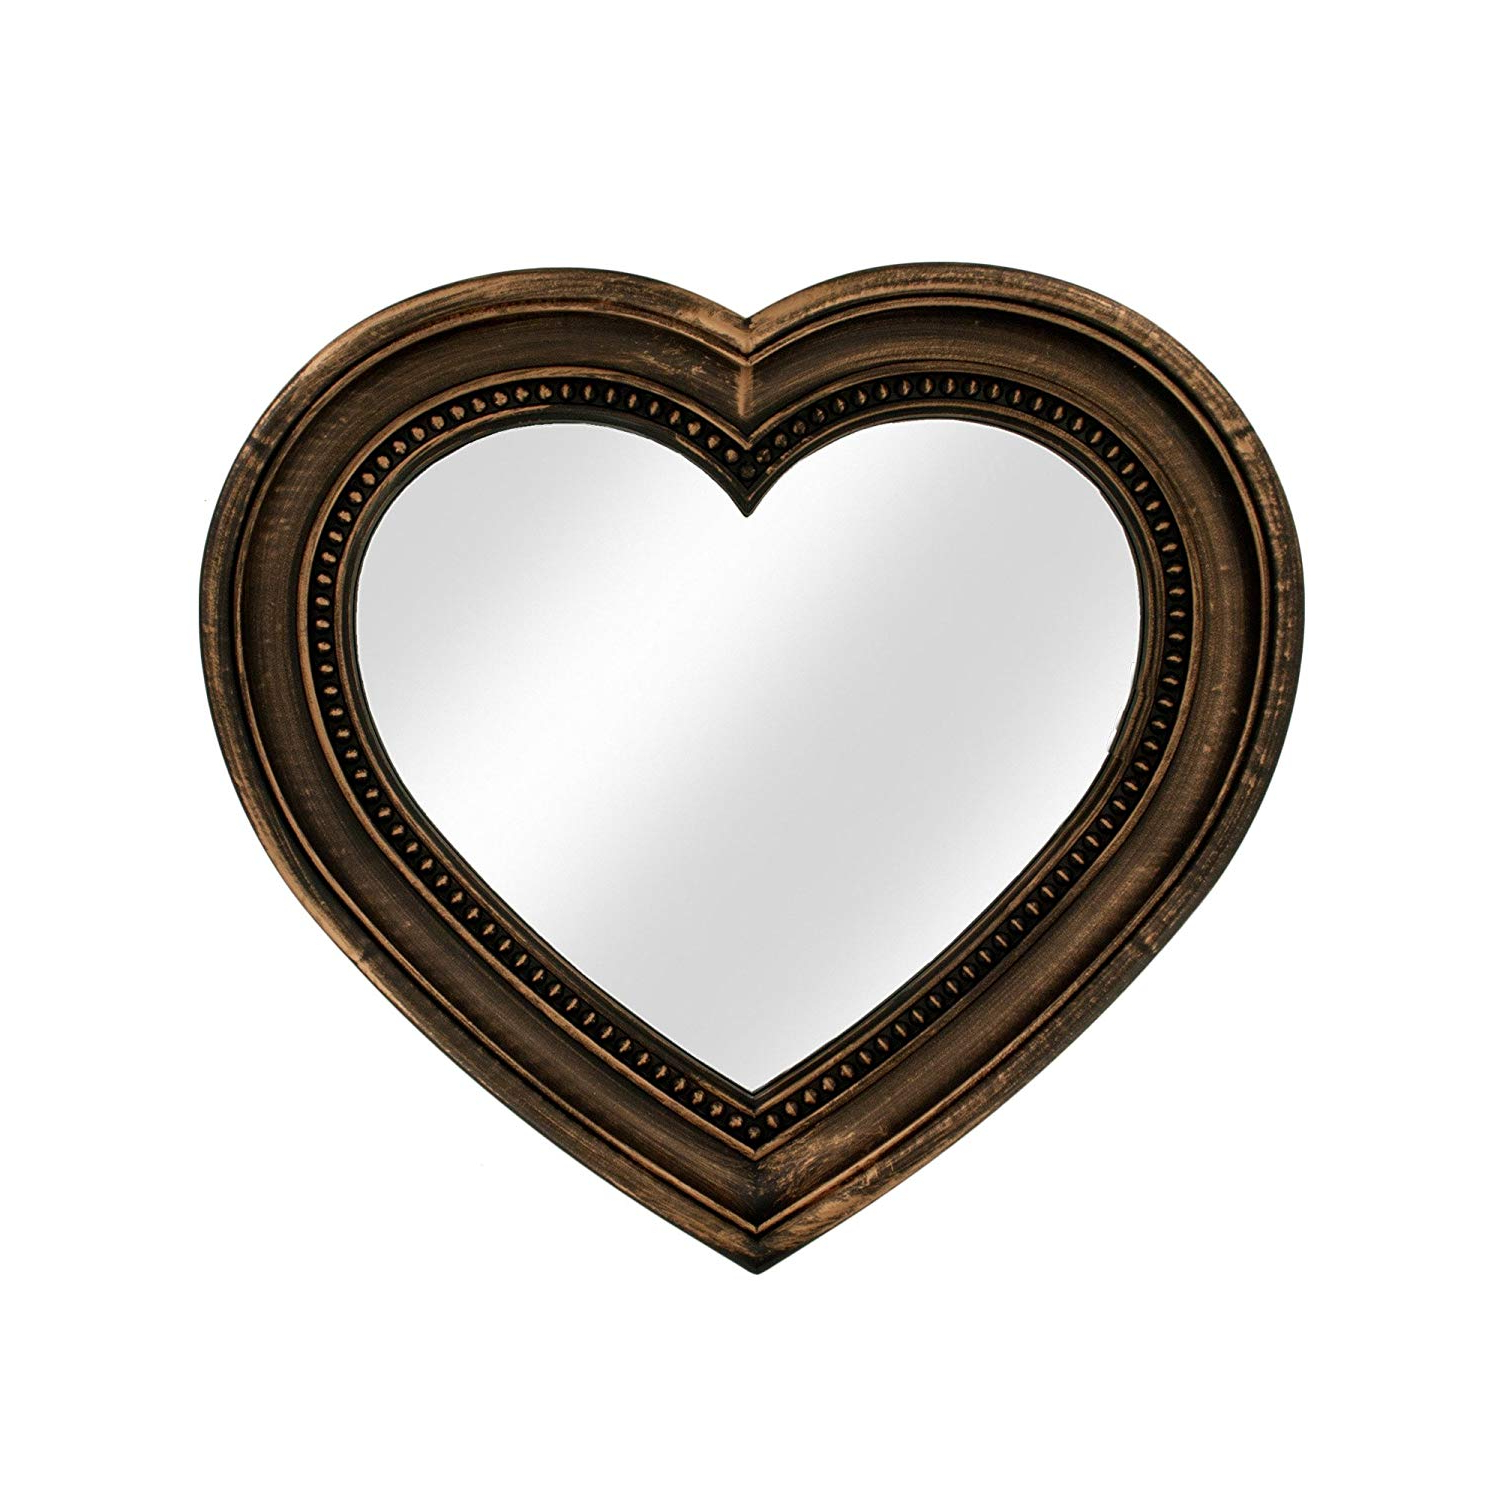 Most Popular Heart Shaped Wall Mirrors Inside Amazon: 123 Wholesale – Set Of 6 Antique Bronze Heart Shaped (View 16 of 20)